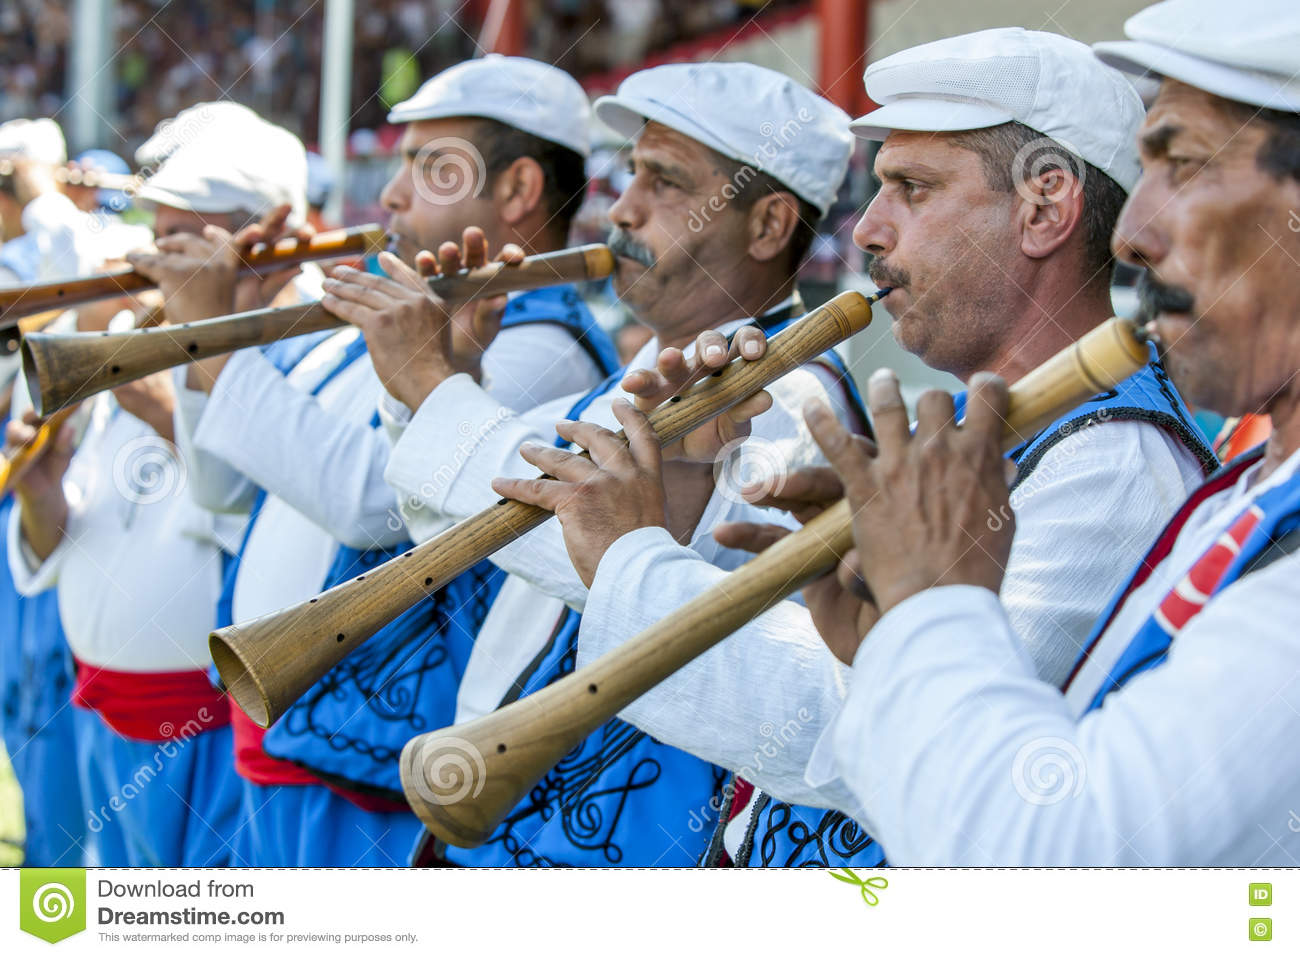 Gypsy flute players perform during competition at the Kirkpinar Turkish Oil Wrestling Festival in Edirne, Turkey.